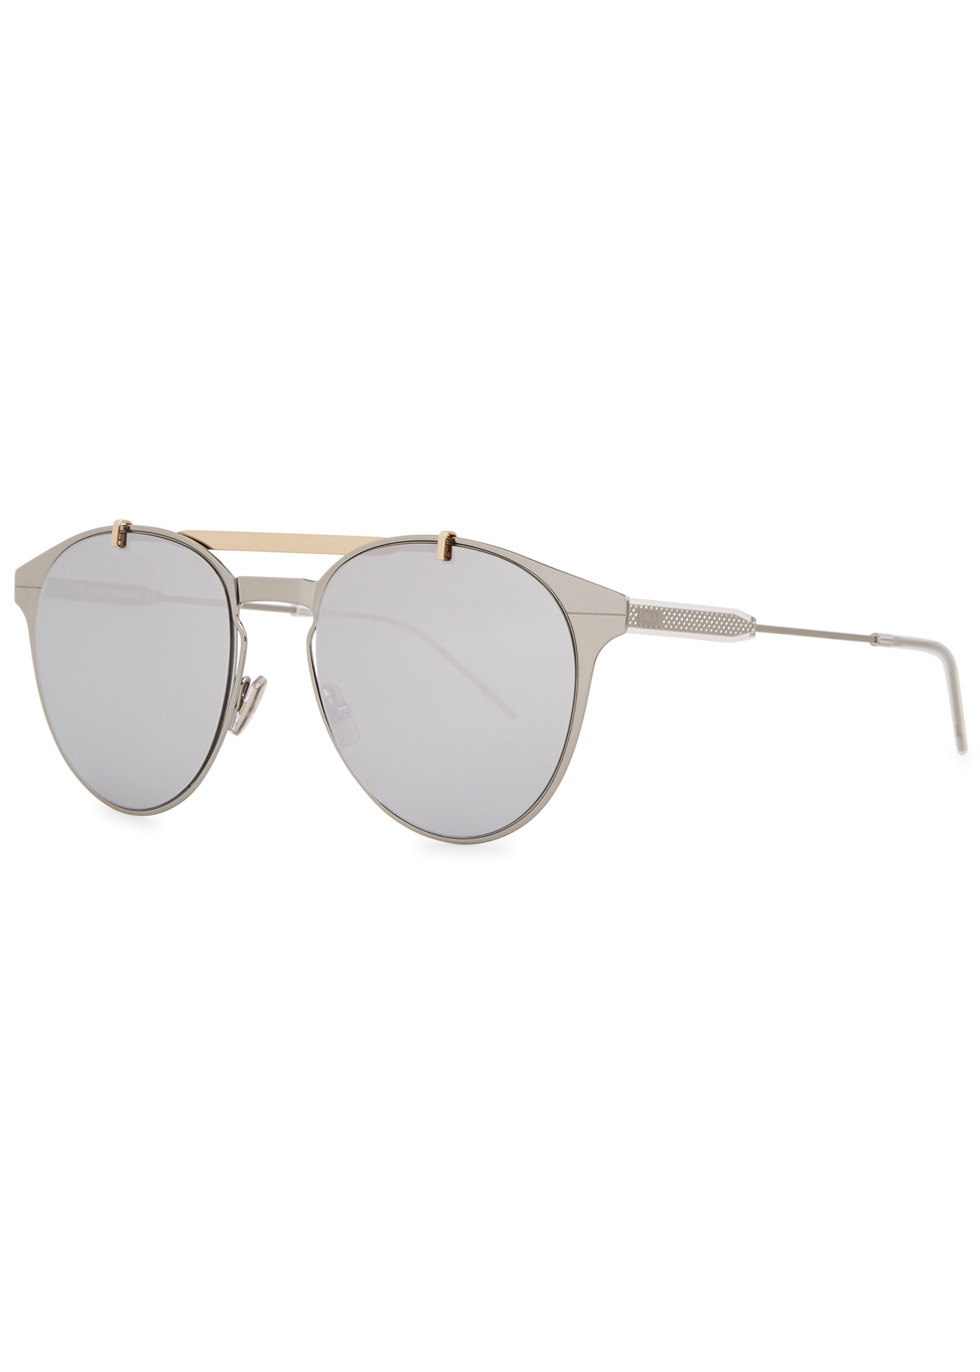 Dior Motion1 aviator-style sunglasses - Dior Homme